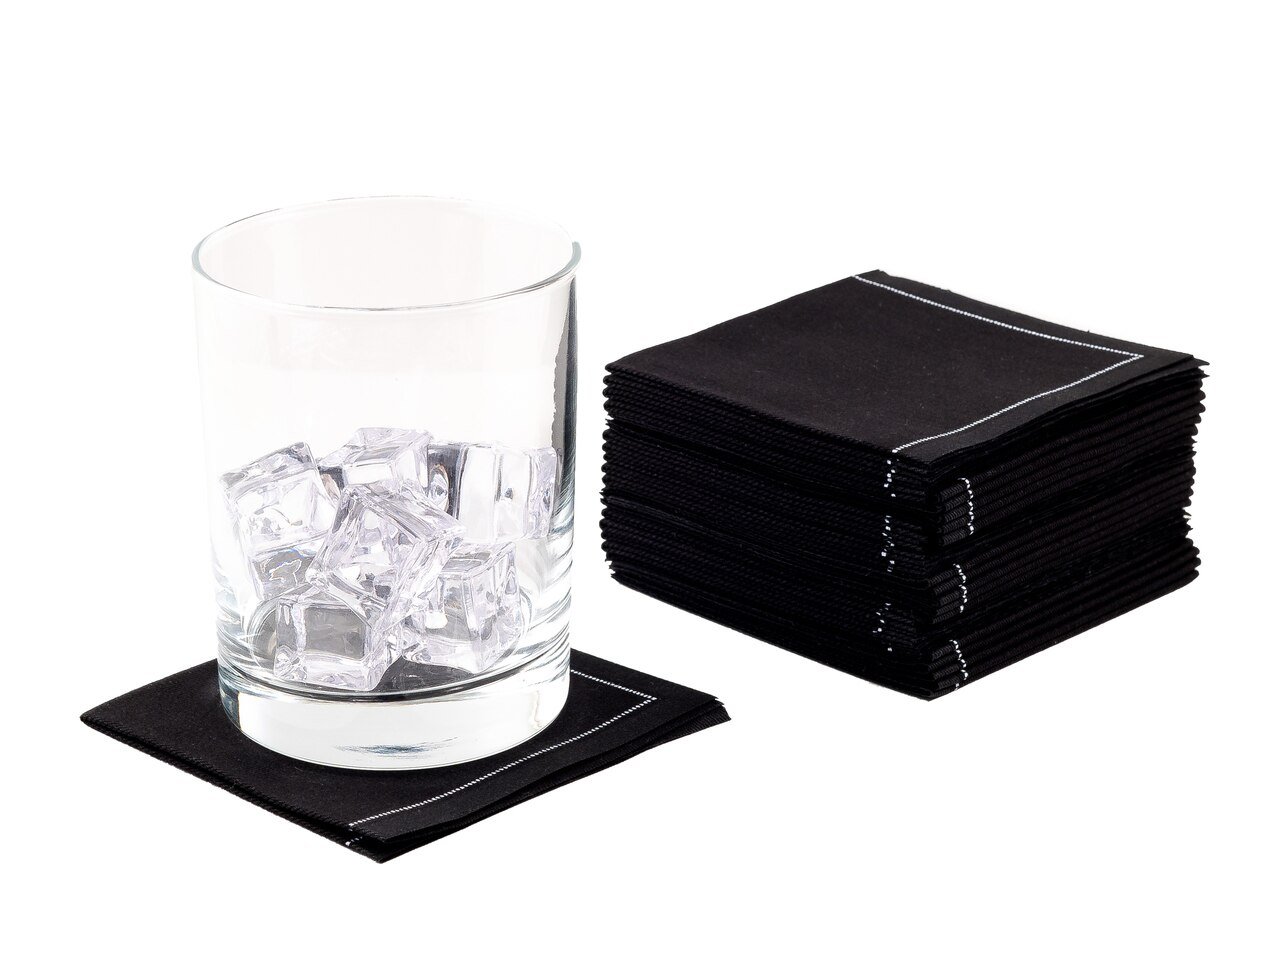 "Black Cotton 1/4 Fold Cocktail (200 GSM) - 8"" x 8"" (folded 4"" x 4"") - 600 units"